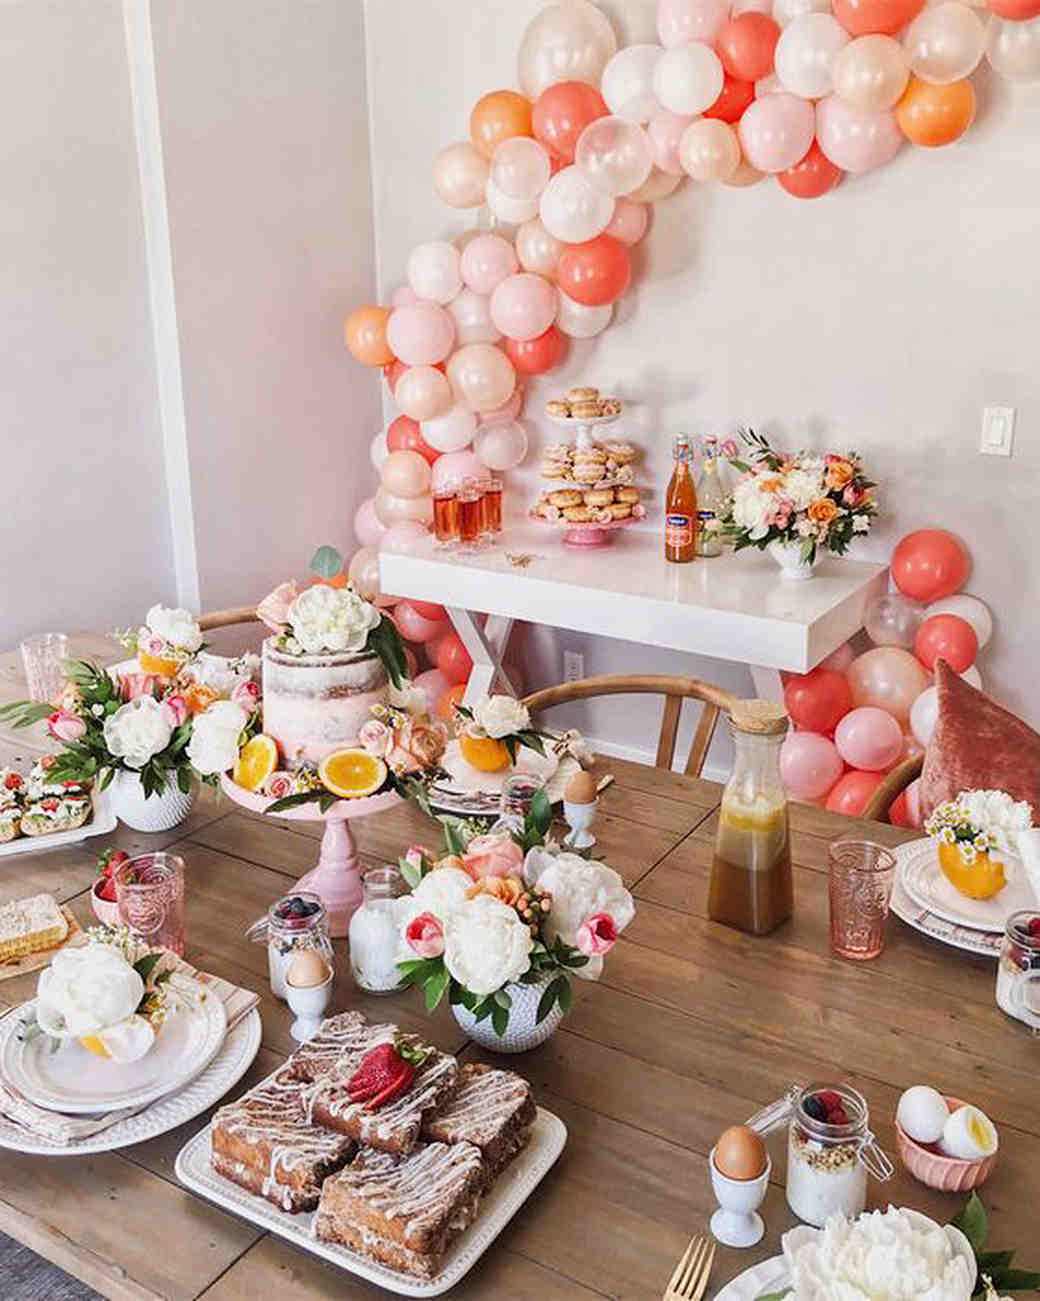 d3ce37fe2da7 bridal shower ideas citrust inspired place settings peach white decor